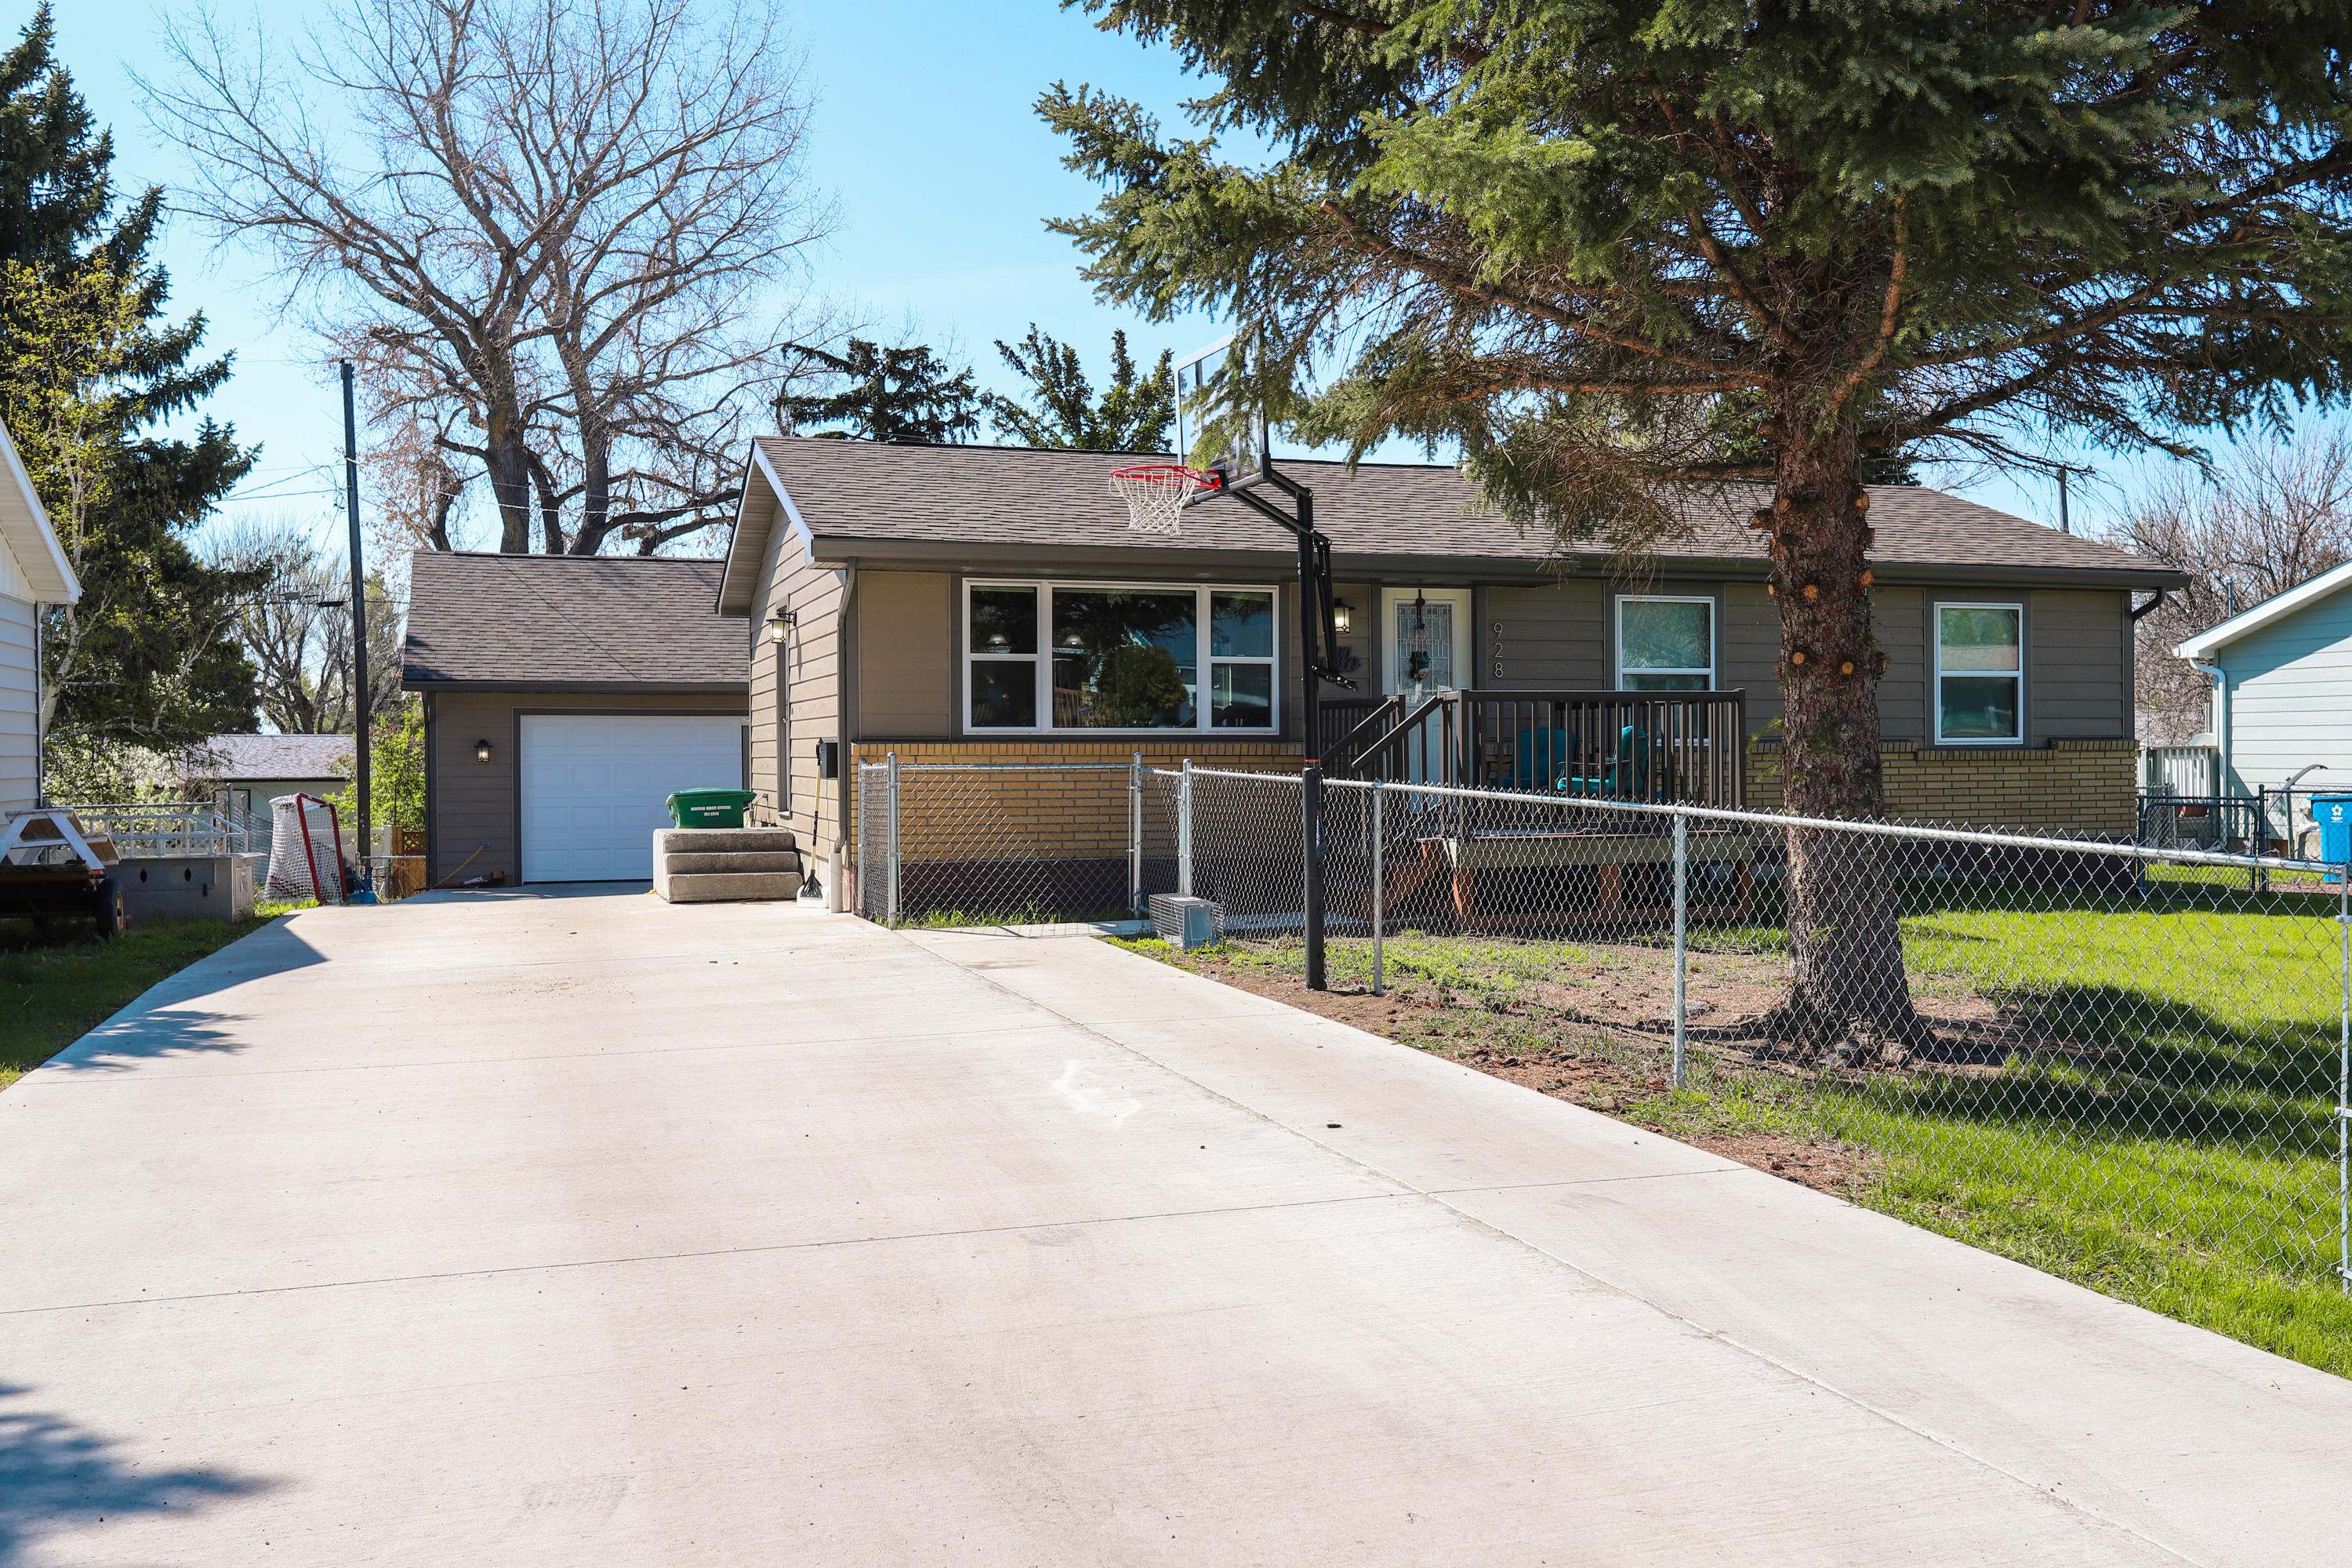 Looking for the perfect place to call home? You'll be able to move in and enjoy this 4 bedroom, 2 bath home. Walk out to a fully fenced backyard and a heated double garage with bonus parking. Don't miss your chance! Call Kyle Tschetter at 406-282-3500, or your real estate professional.